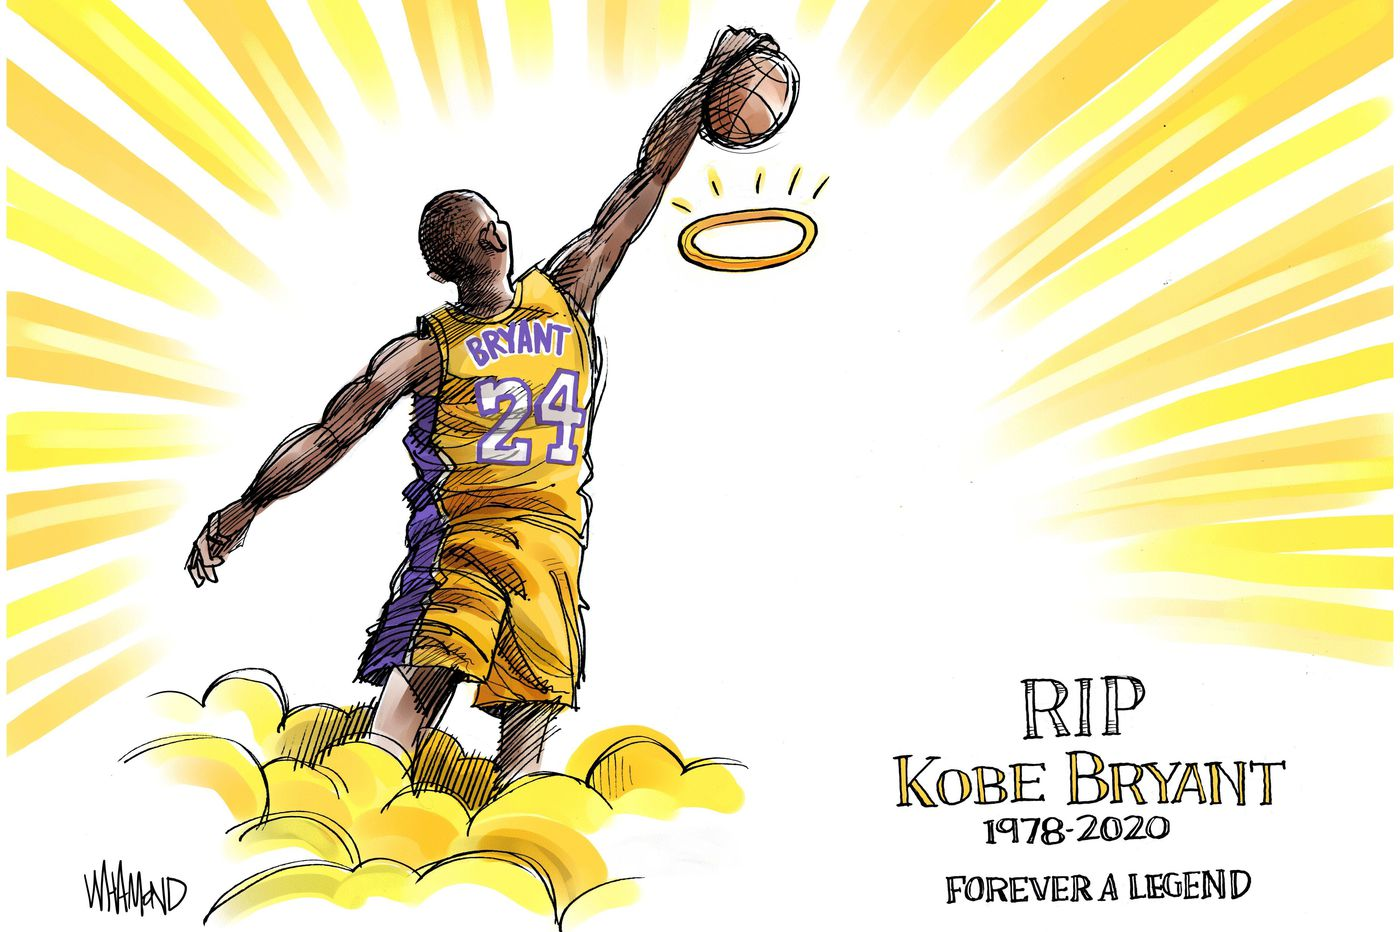 Cartoons: Kobe Bryant's death, memorialized by artists around the world | Perspective